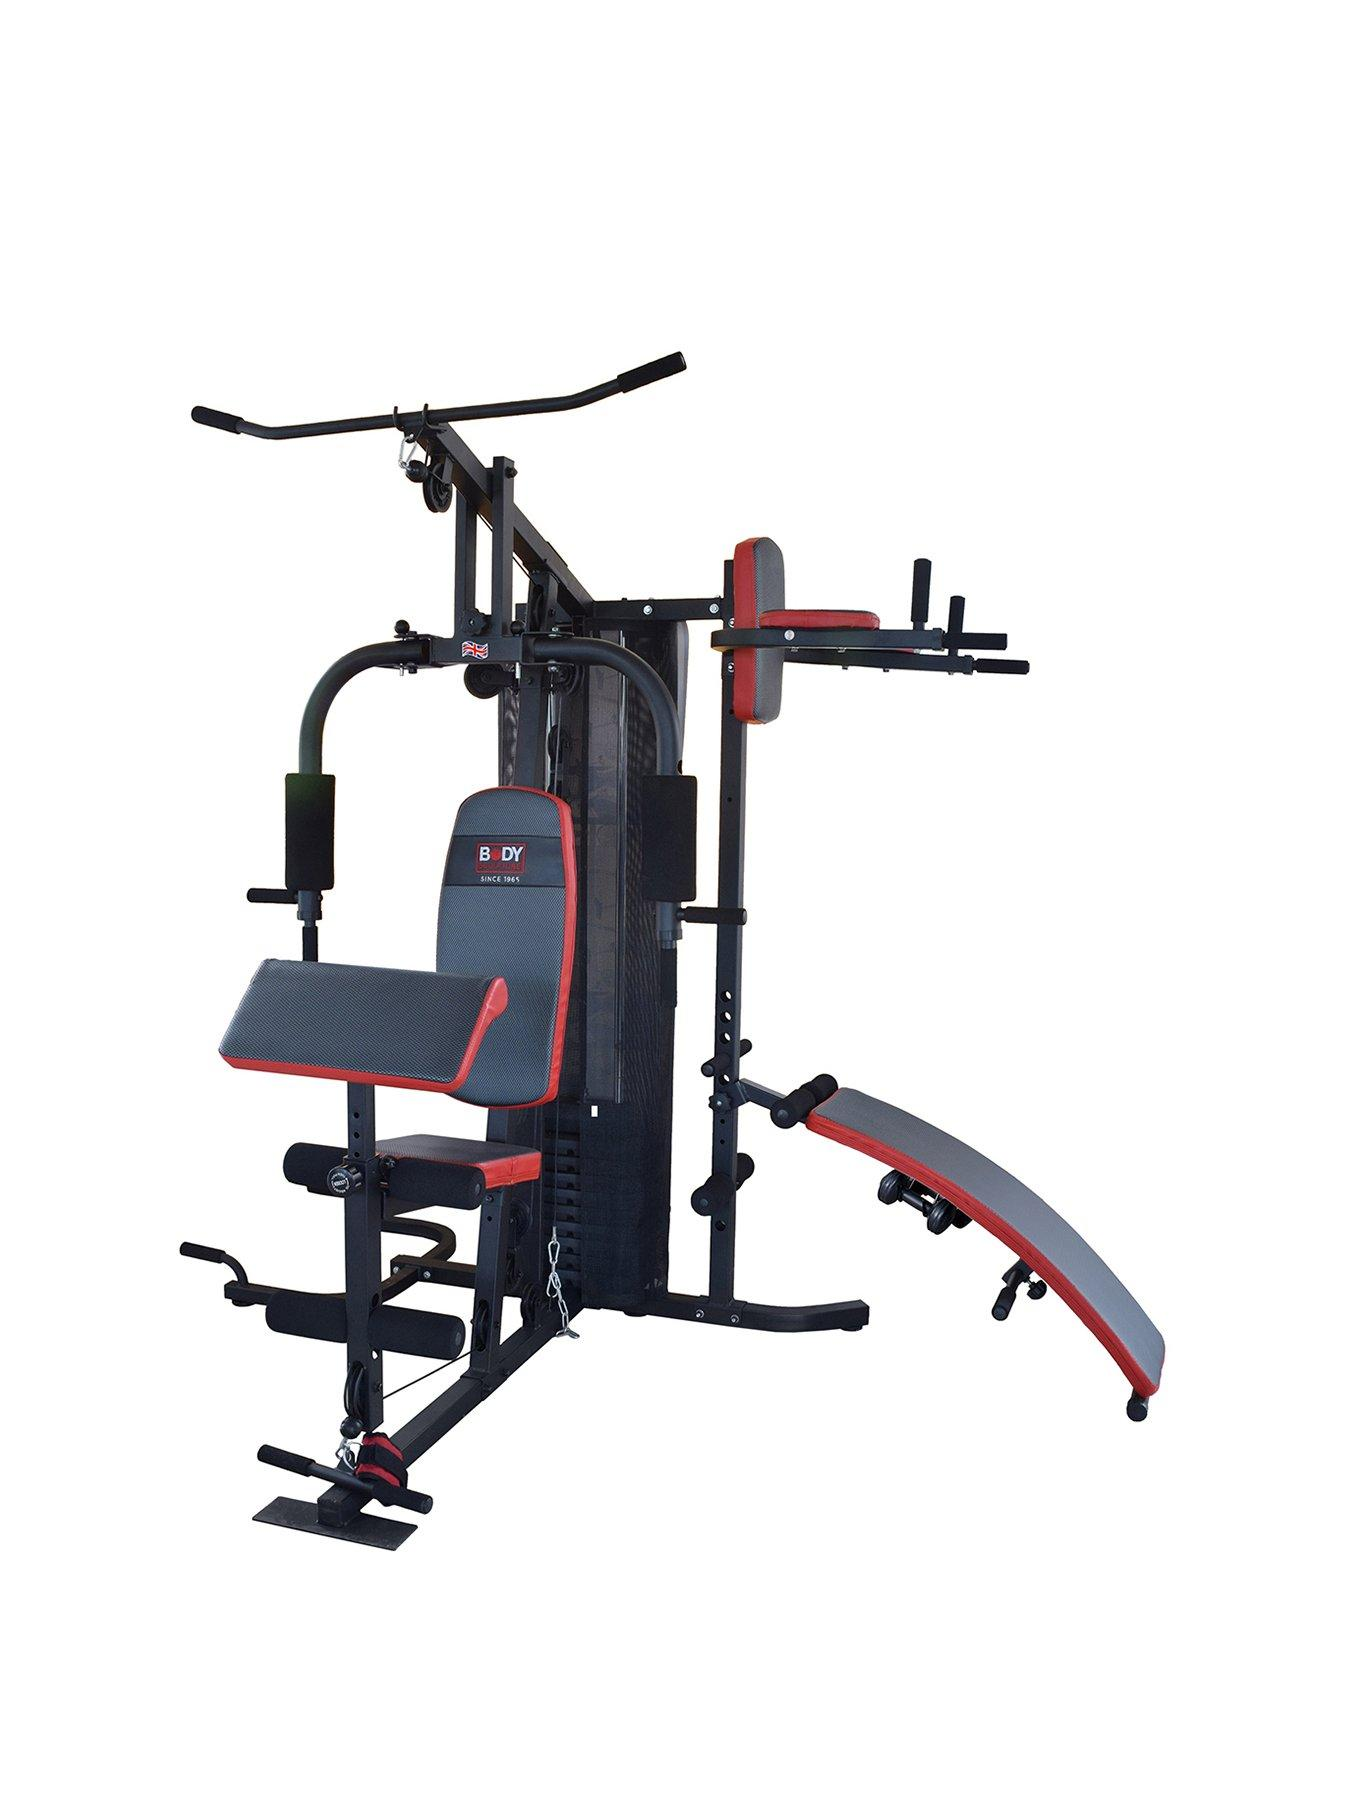 Body sculpture kg multi gym with sit up bench and leg raise